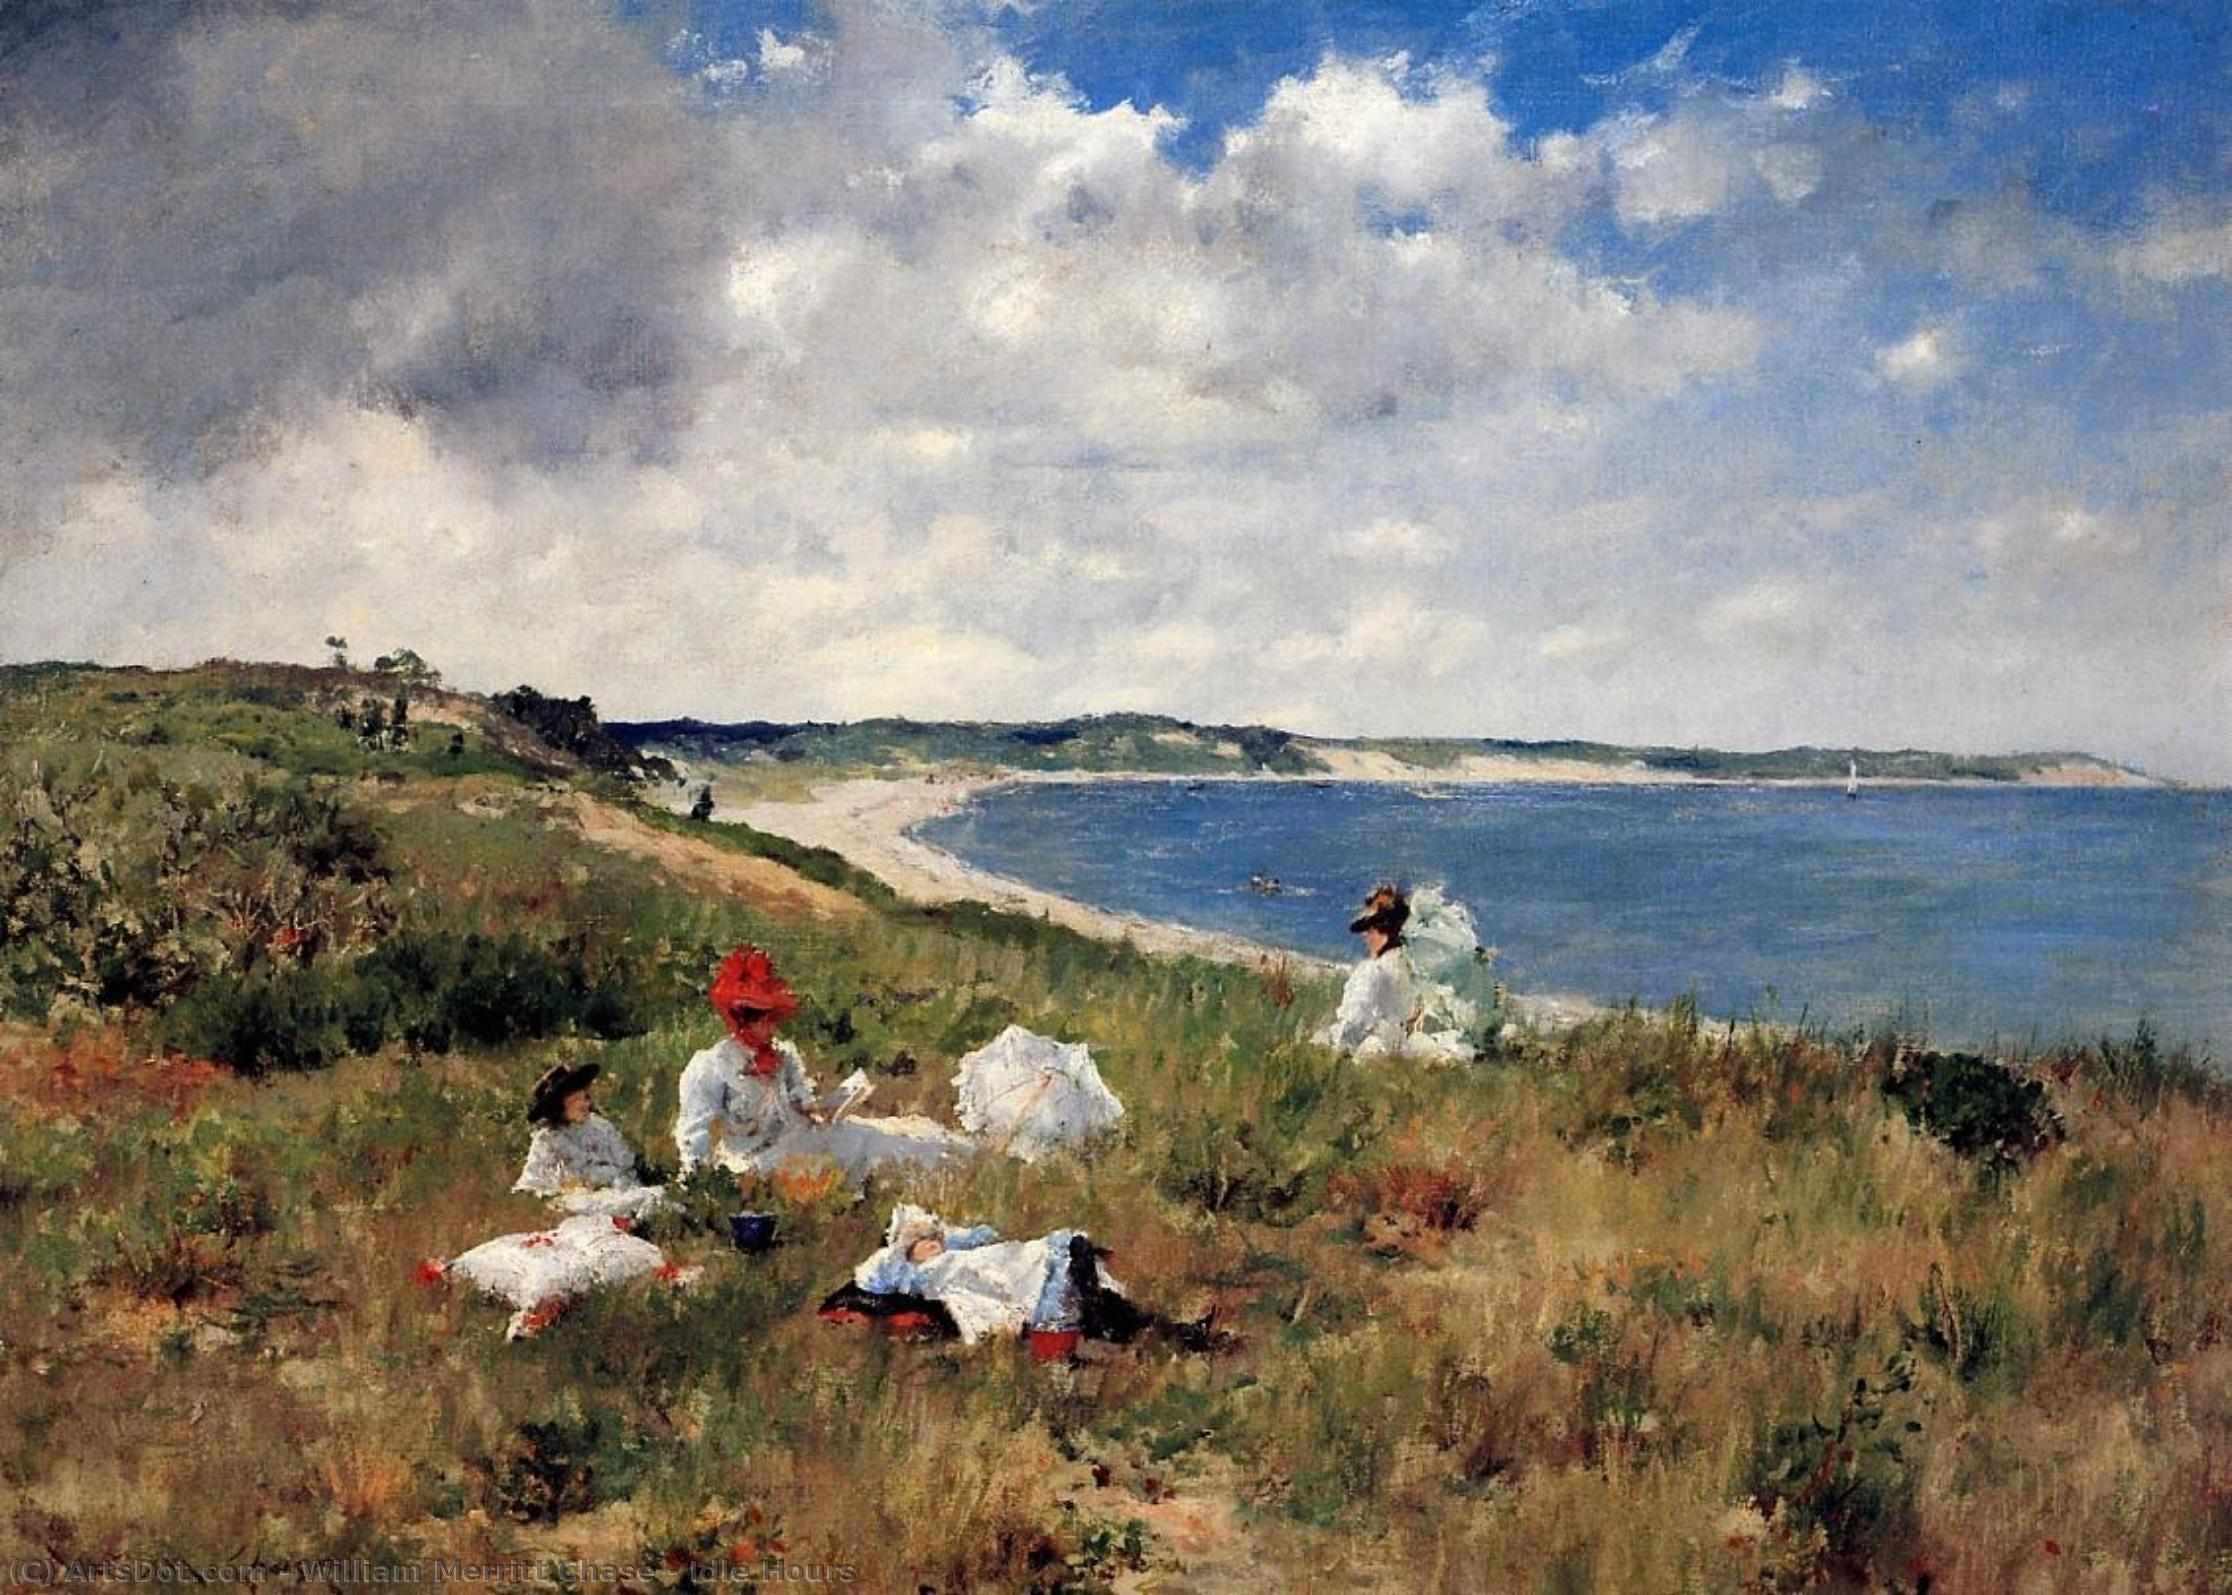 アイドル時間, 1894 バイ William Merritt Chase (1849-1916, United States) | 油絵 William Merritt Chase | ArtsDot.com